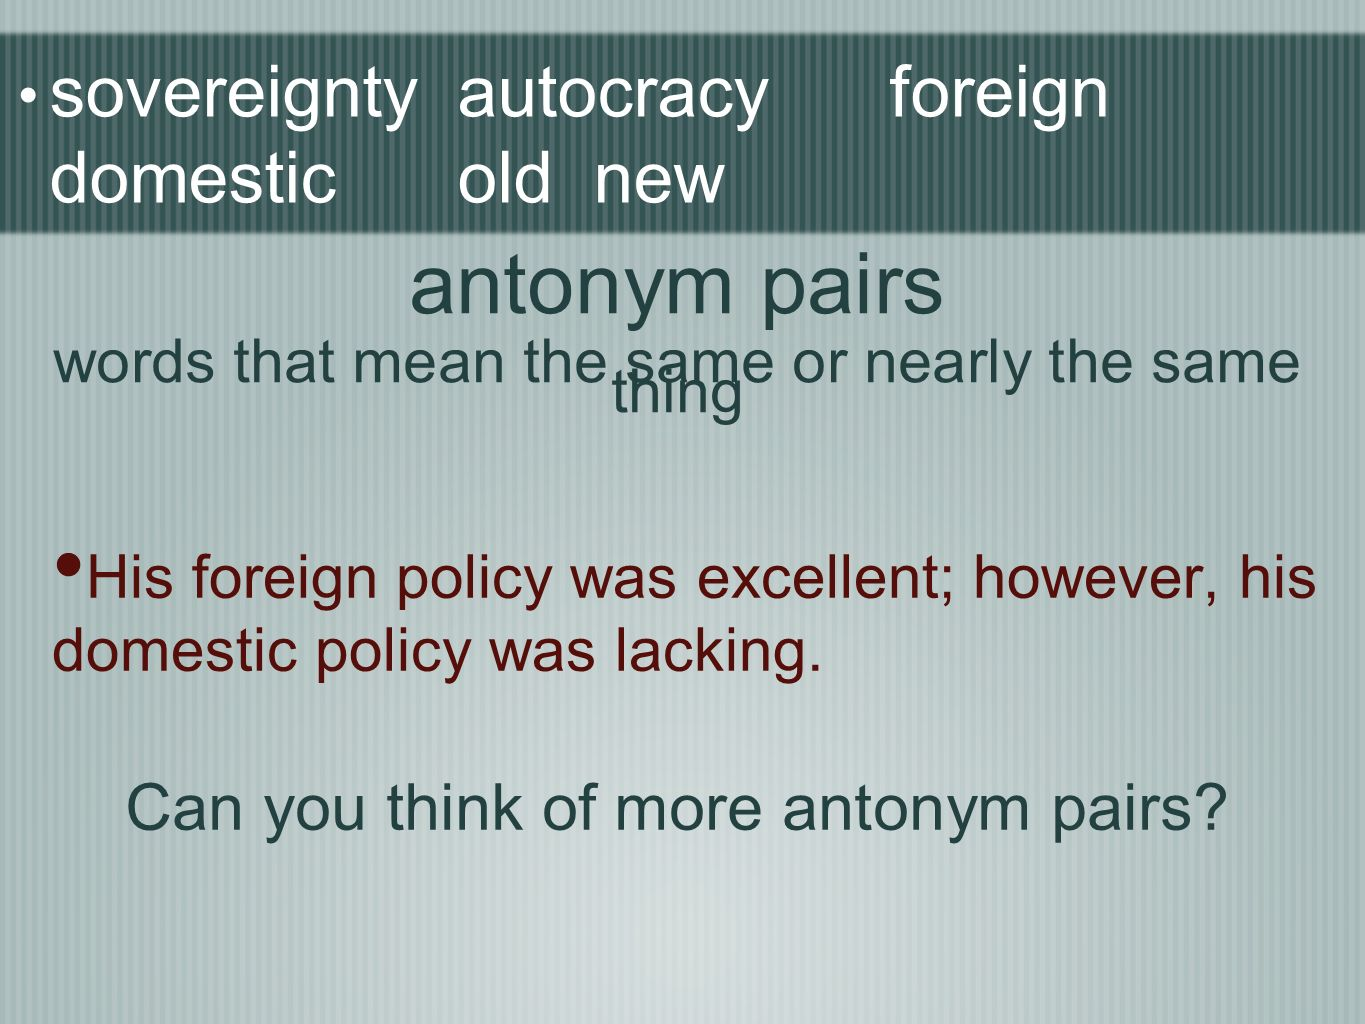 sovereignty autocracy foreign domestic old new His foreign policy was excellent; however, his domestic policy was lacking. antonym pairs words that me